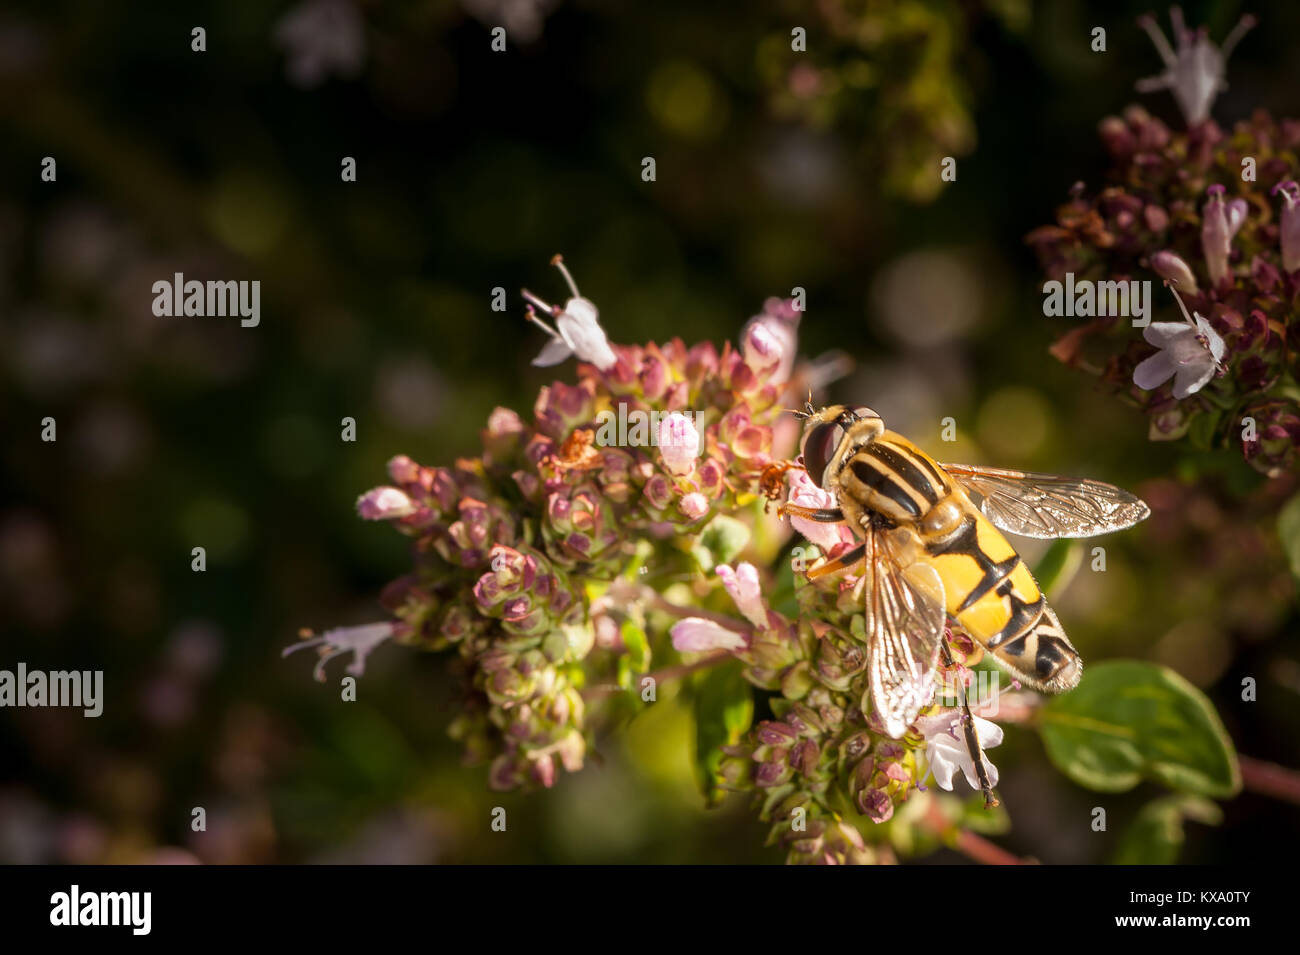 A flower fly visiting a marjoram plant (Origanum vulgare) - Stock Image